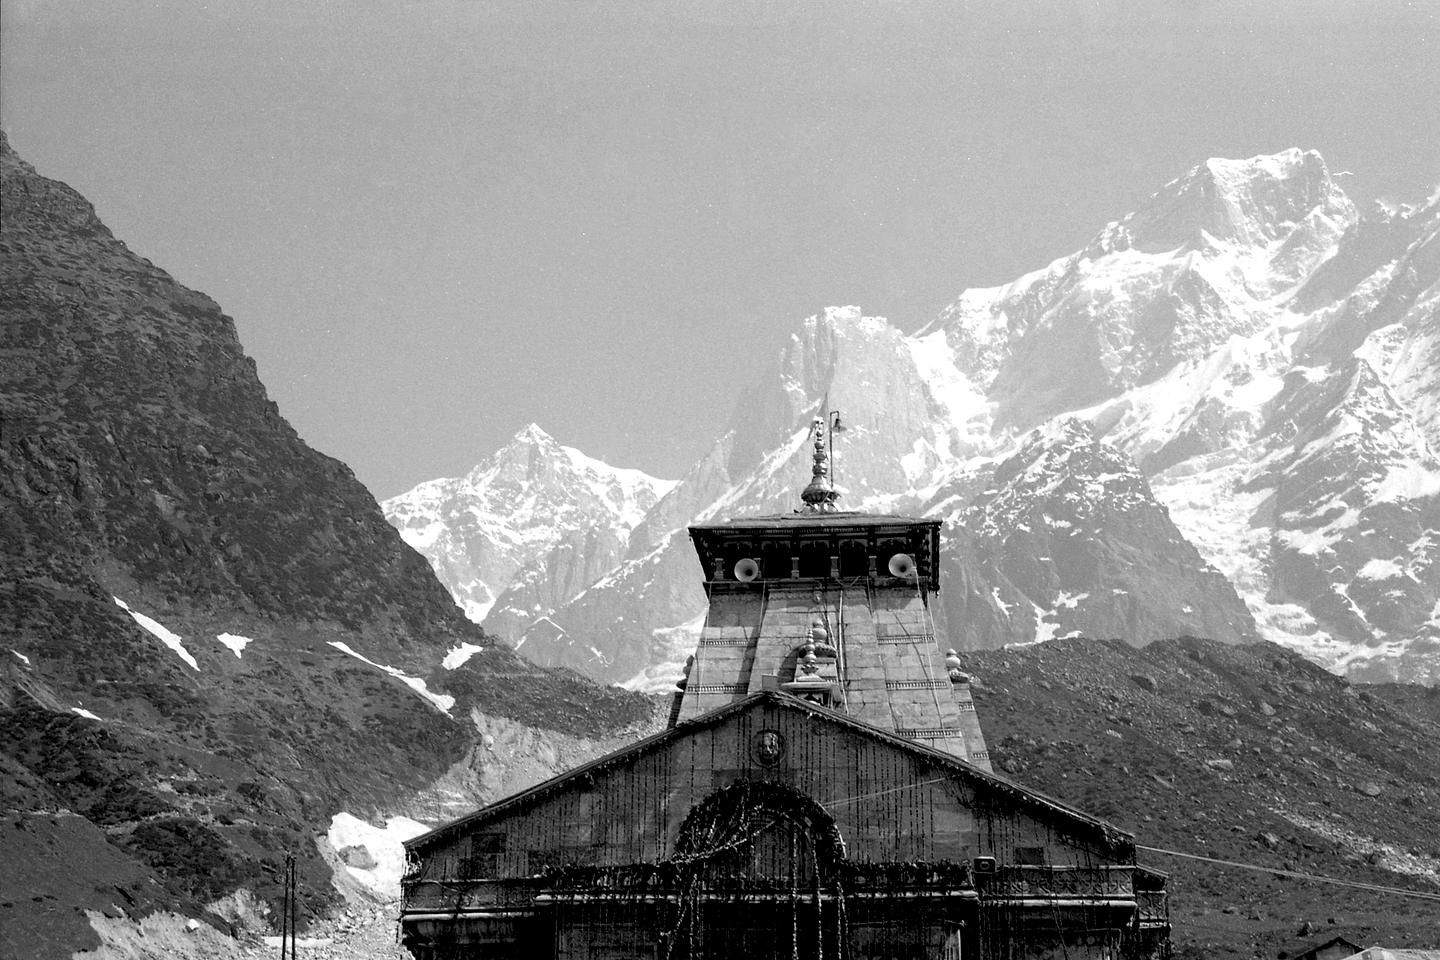 The Shrine, Kedarnath 2019   Edition 1 of 5